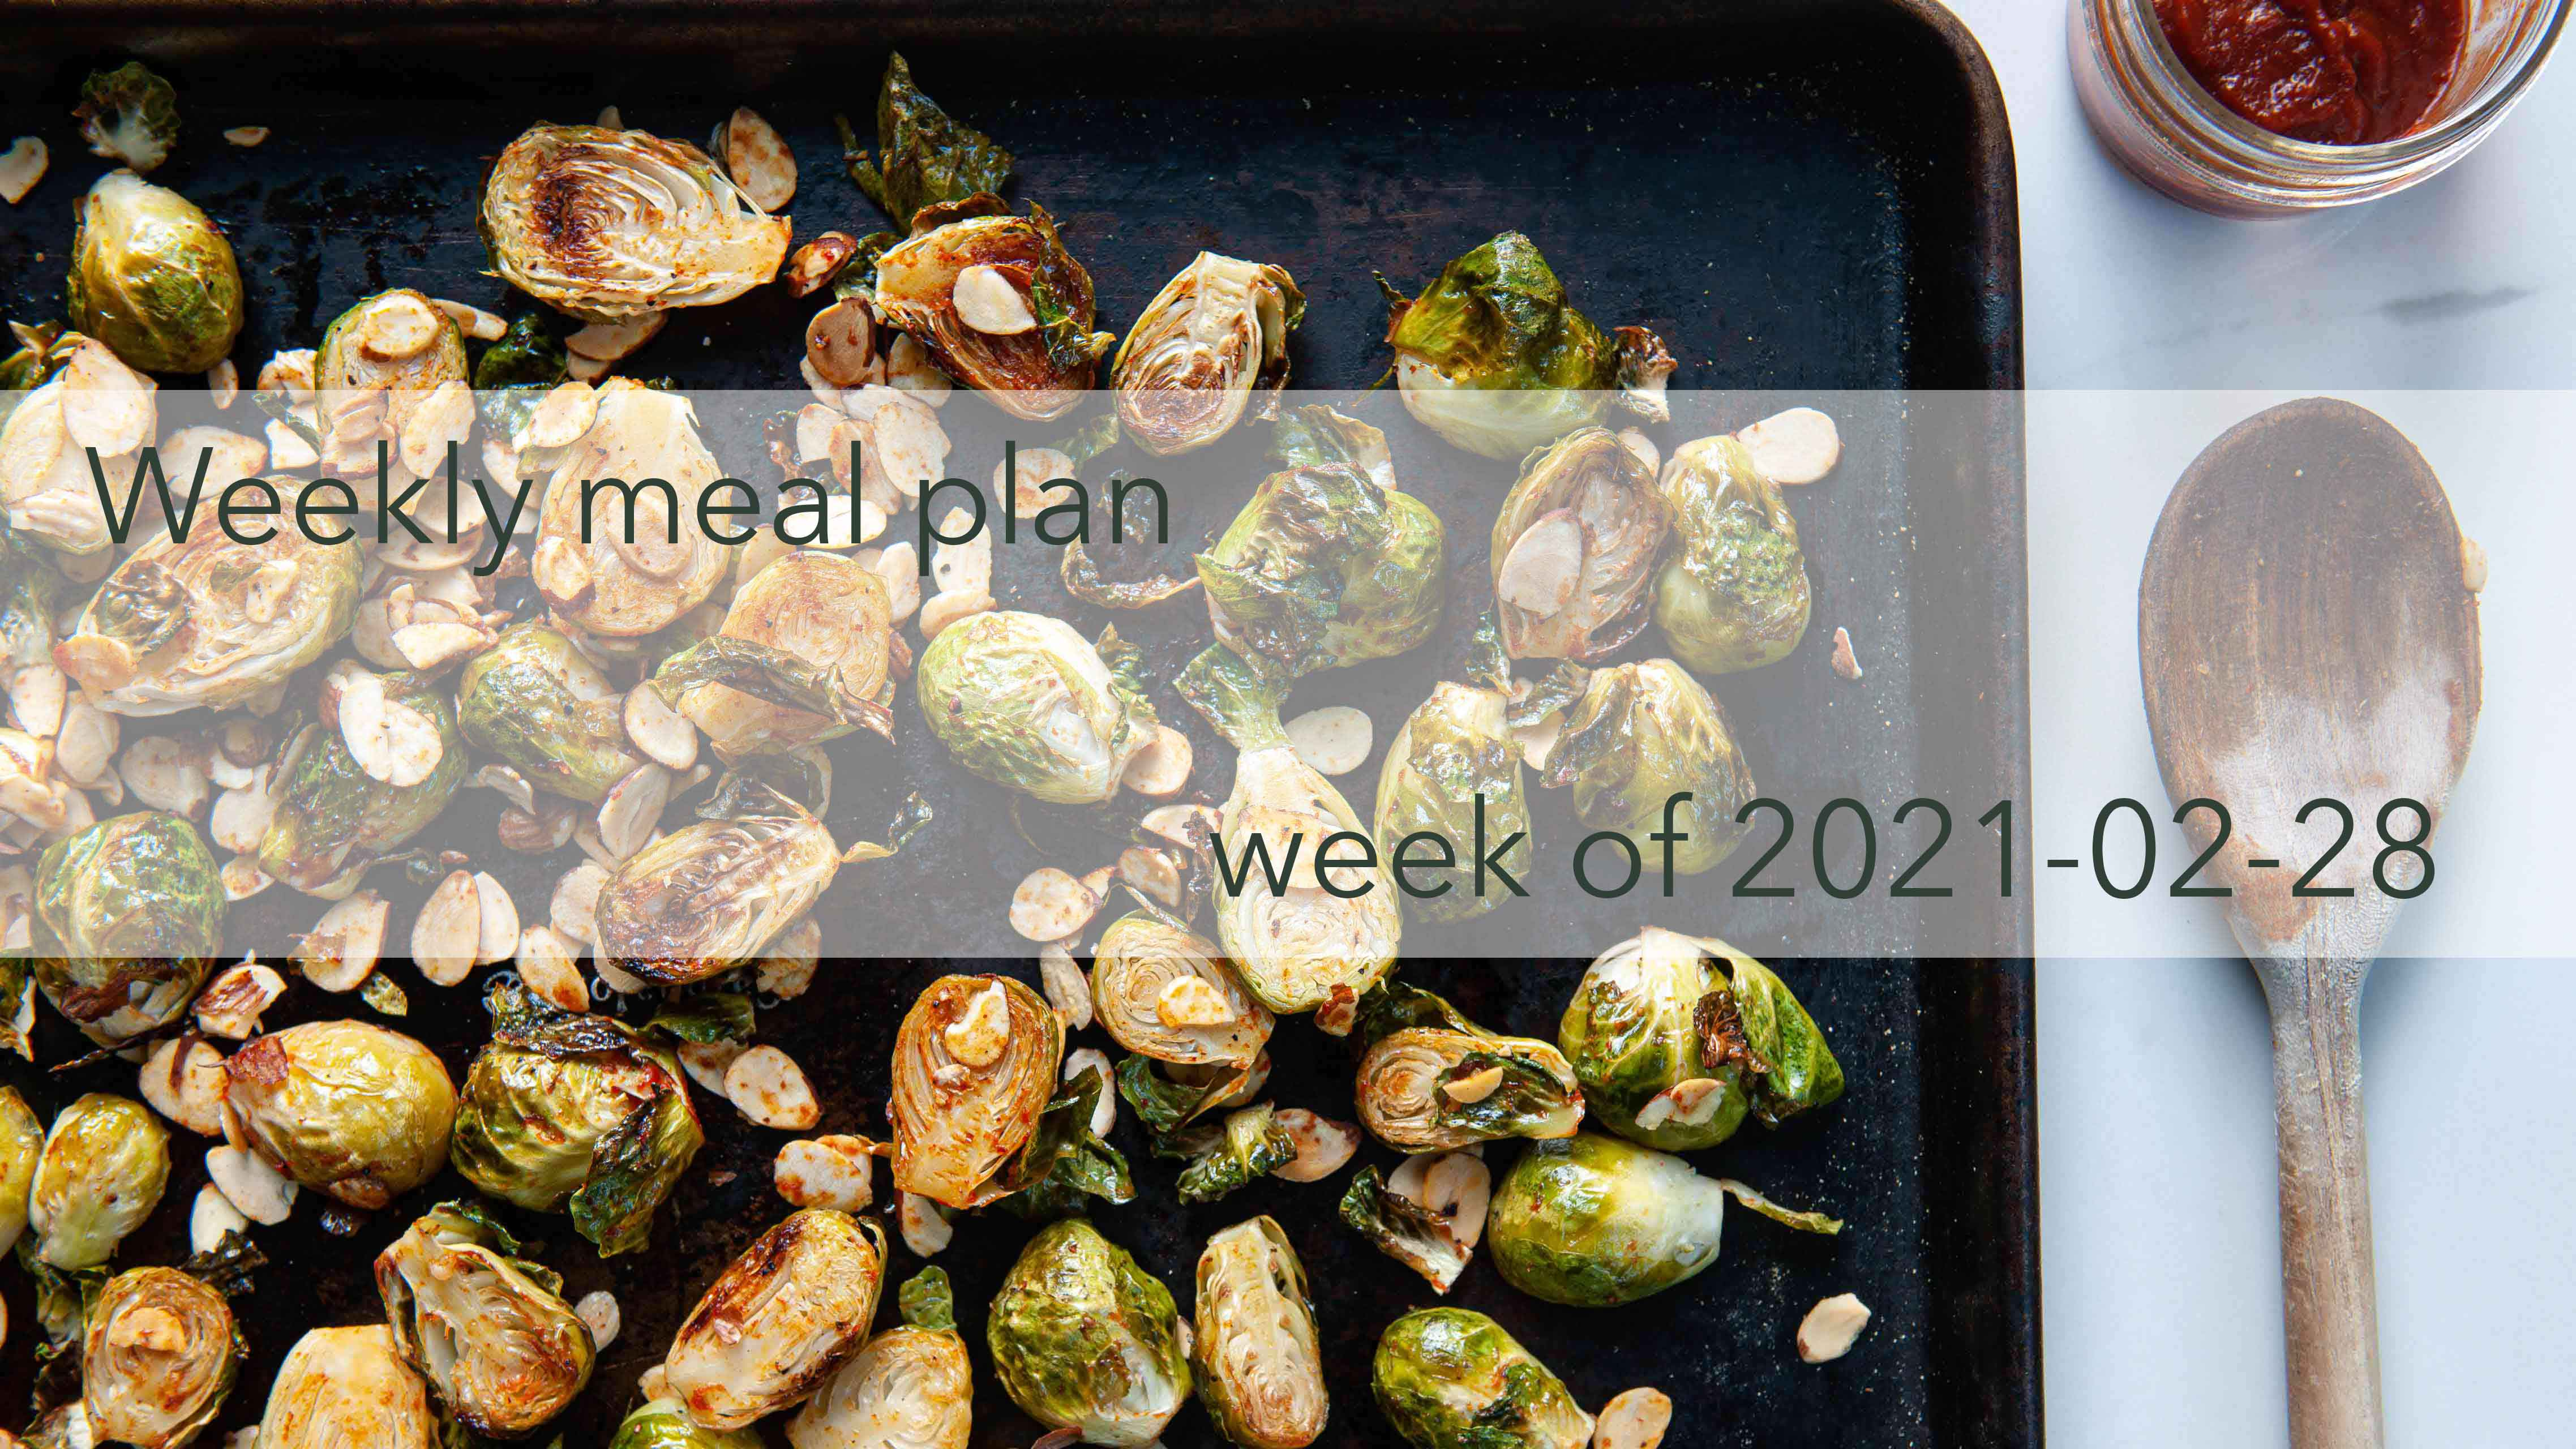 Weekly Meal Plan 2021-02-28 Cover Photo